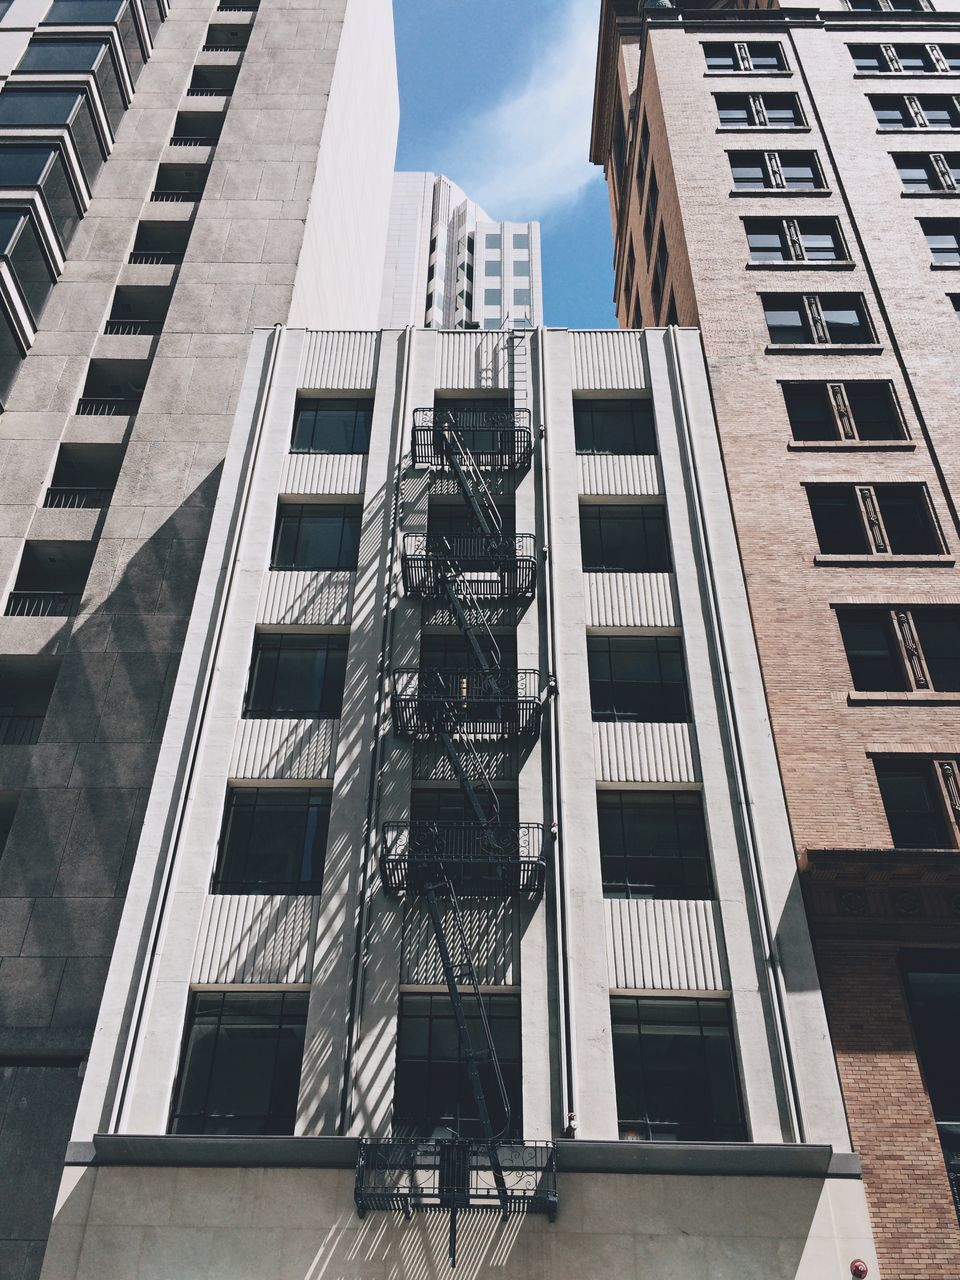 Low Angle View Of Fire Escape In Building Against Sky